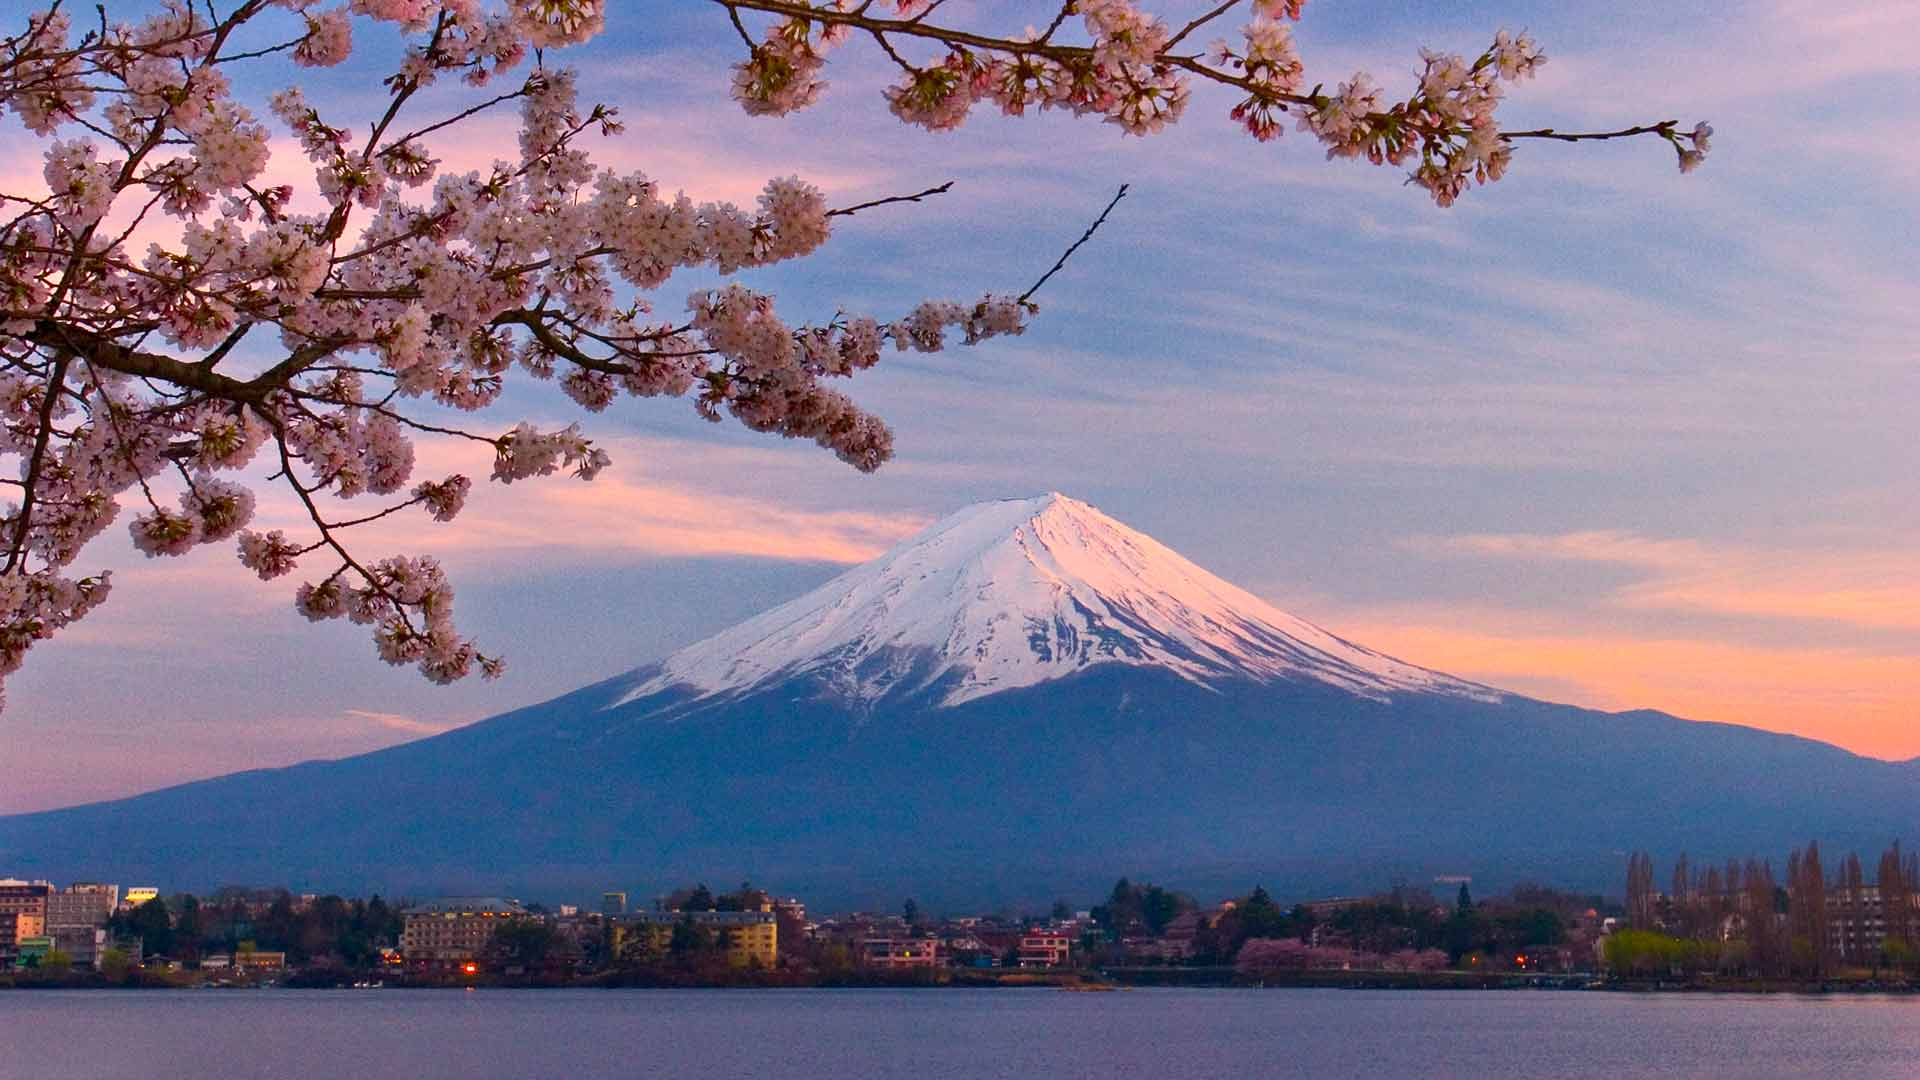 Japan Scenery Wallpapers - Top Free